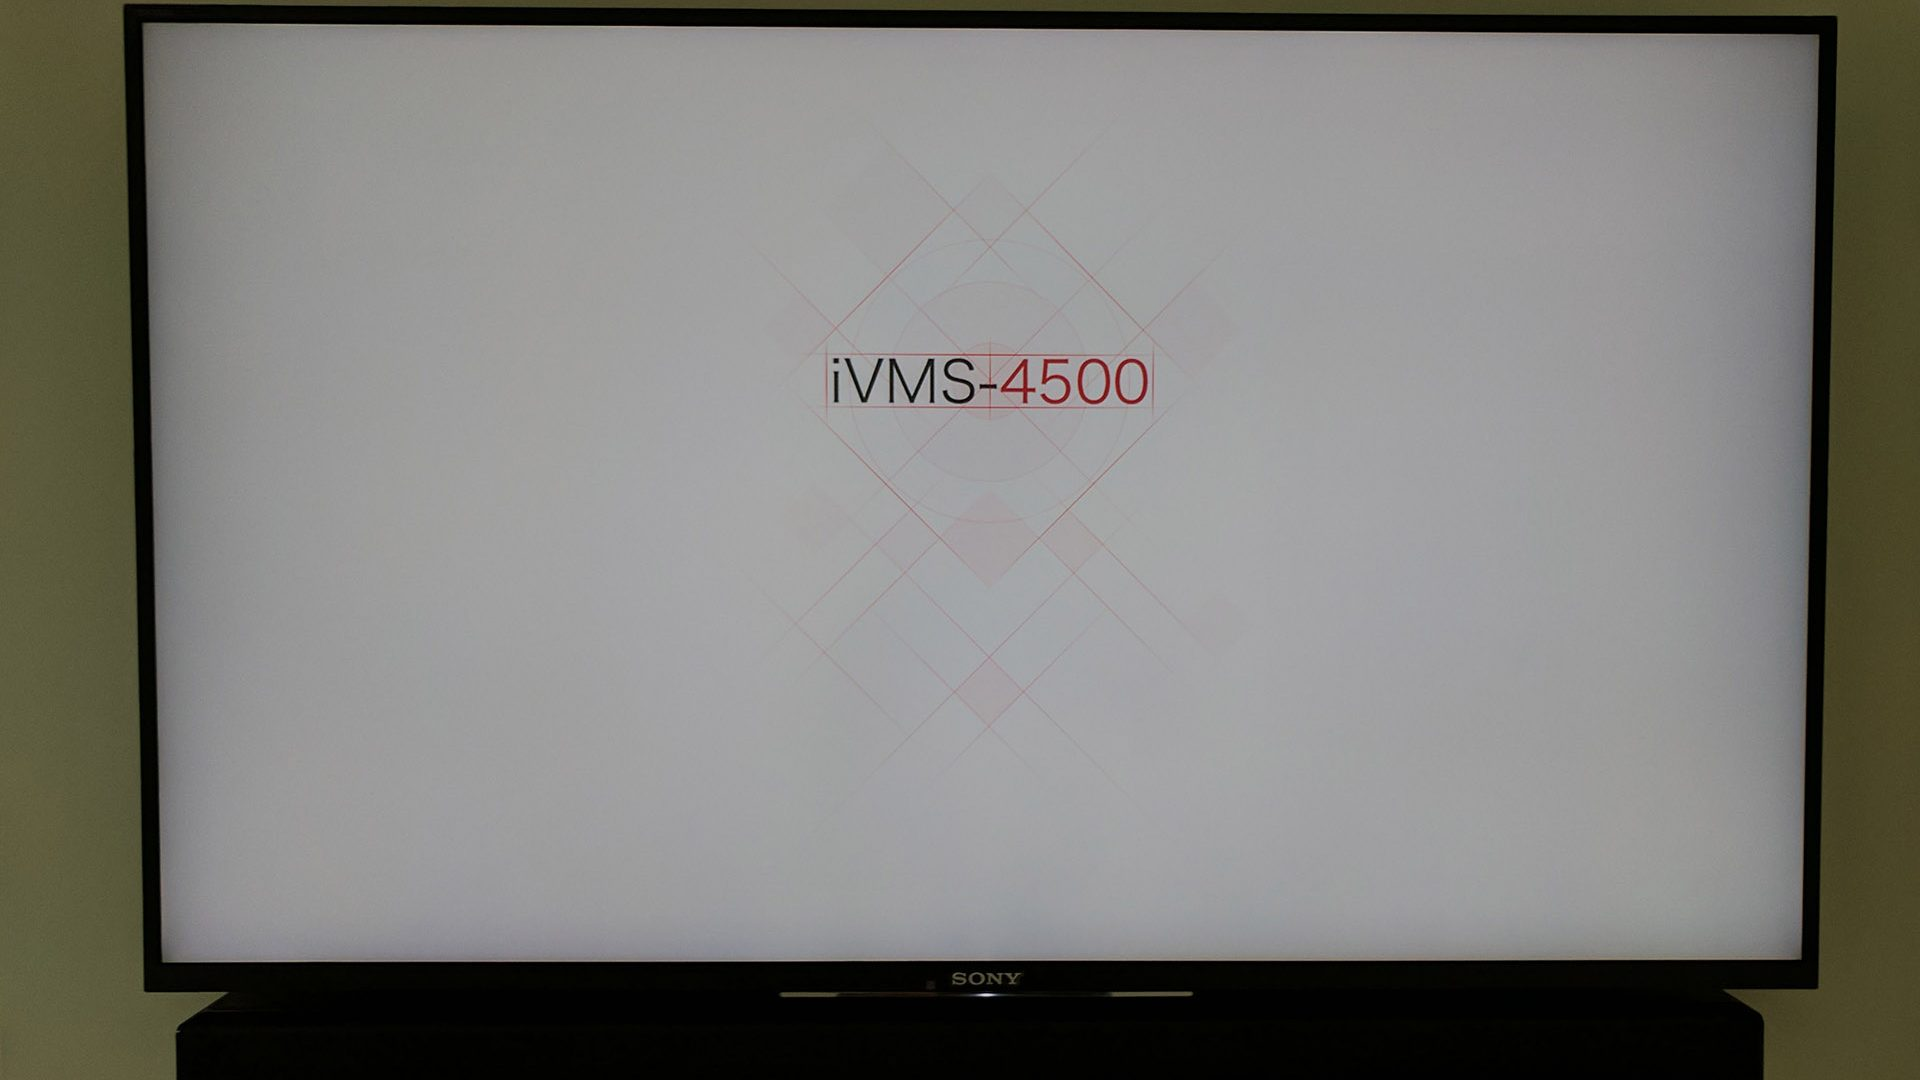 How to install Hikvision iVMS-4500 HD on a Smart TV (by